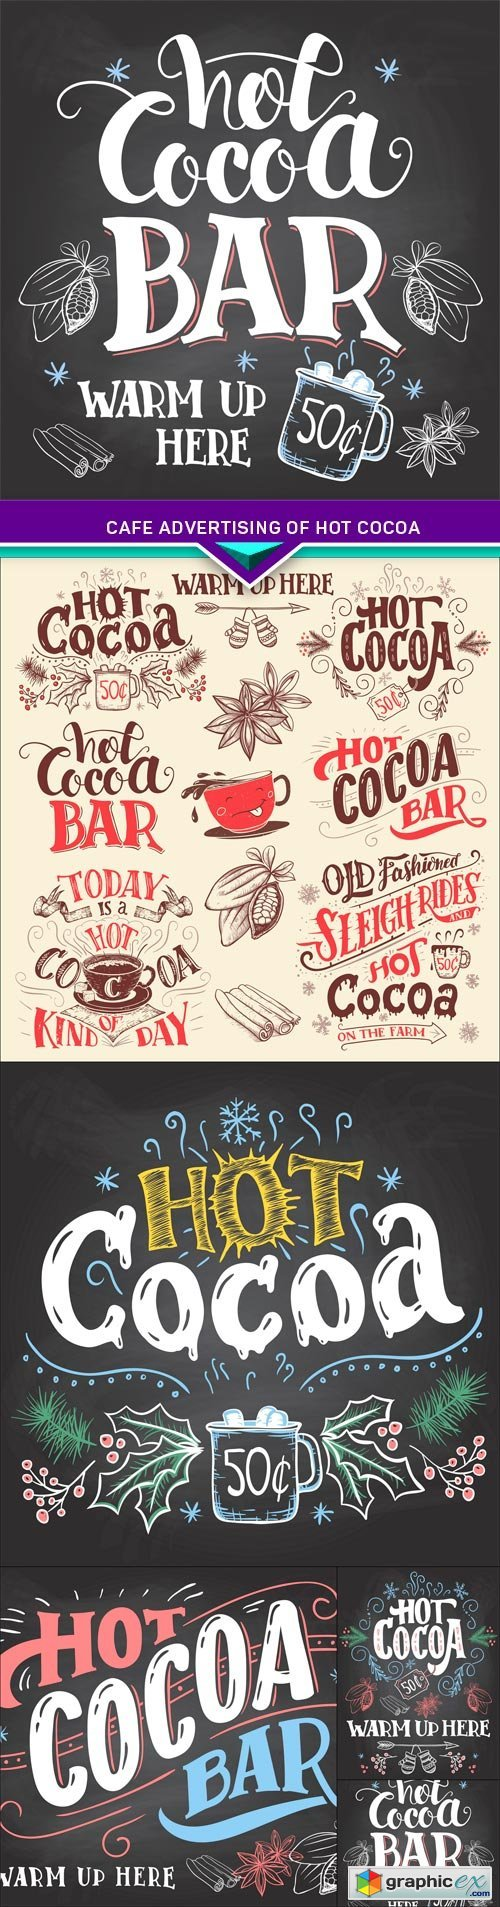 Cafe advertising of hot cocoa drink with a mug 5X EPS